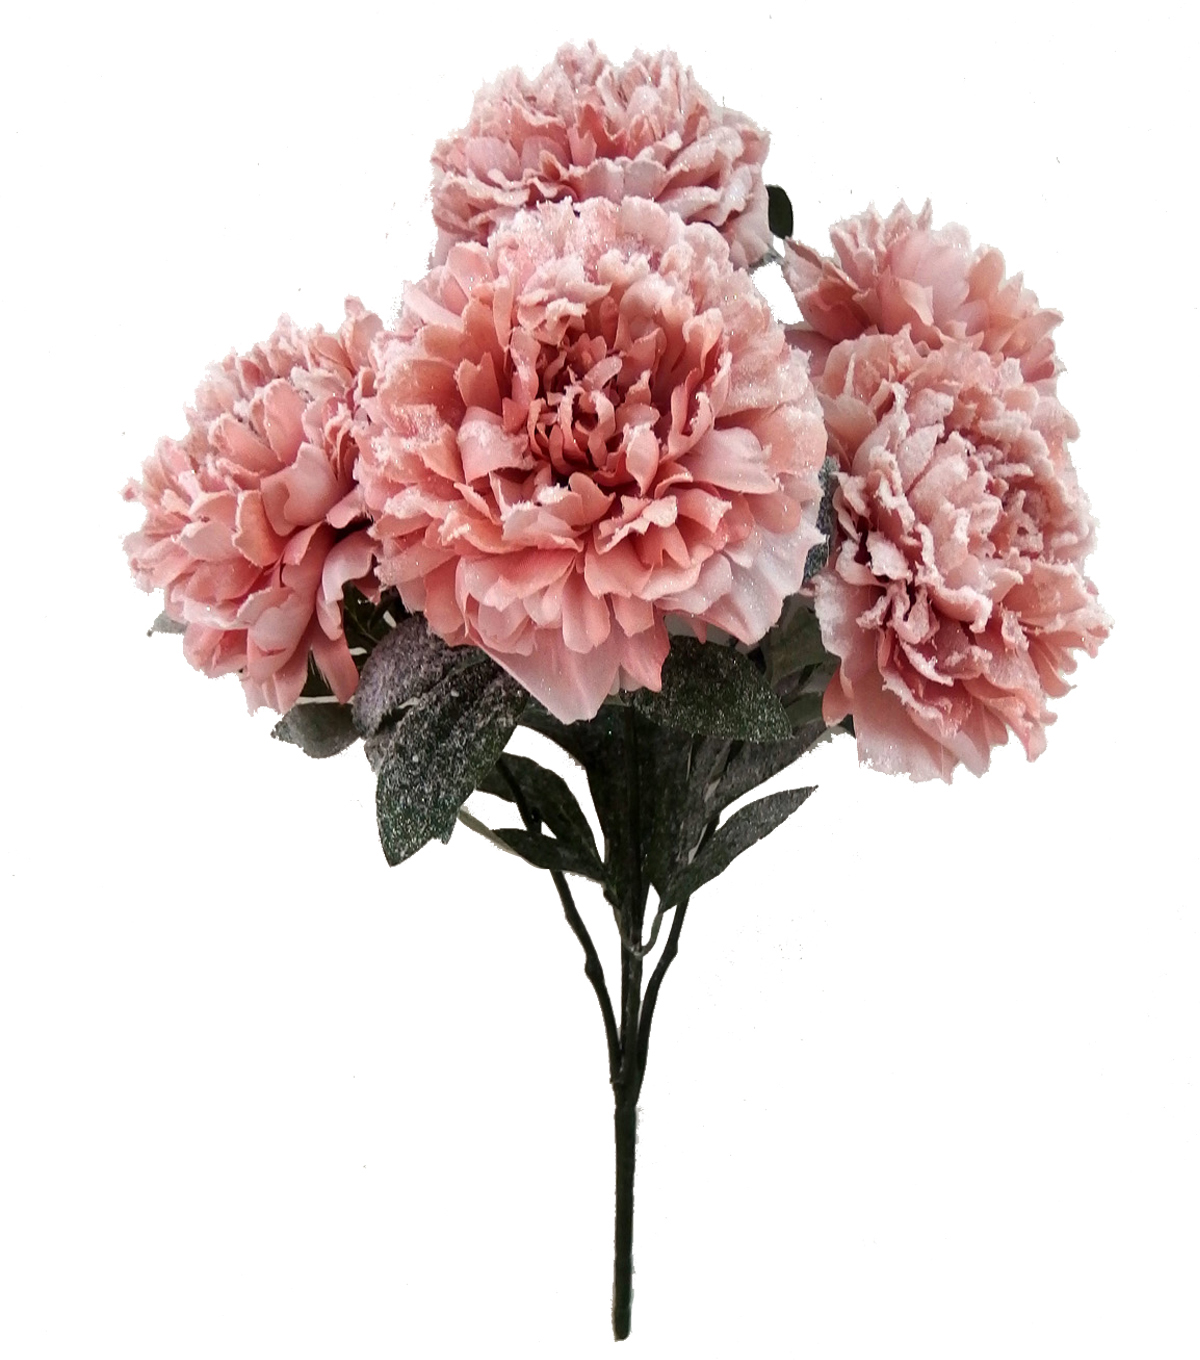 Blooming Holiday Peony Bush With Snow-Pink